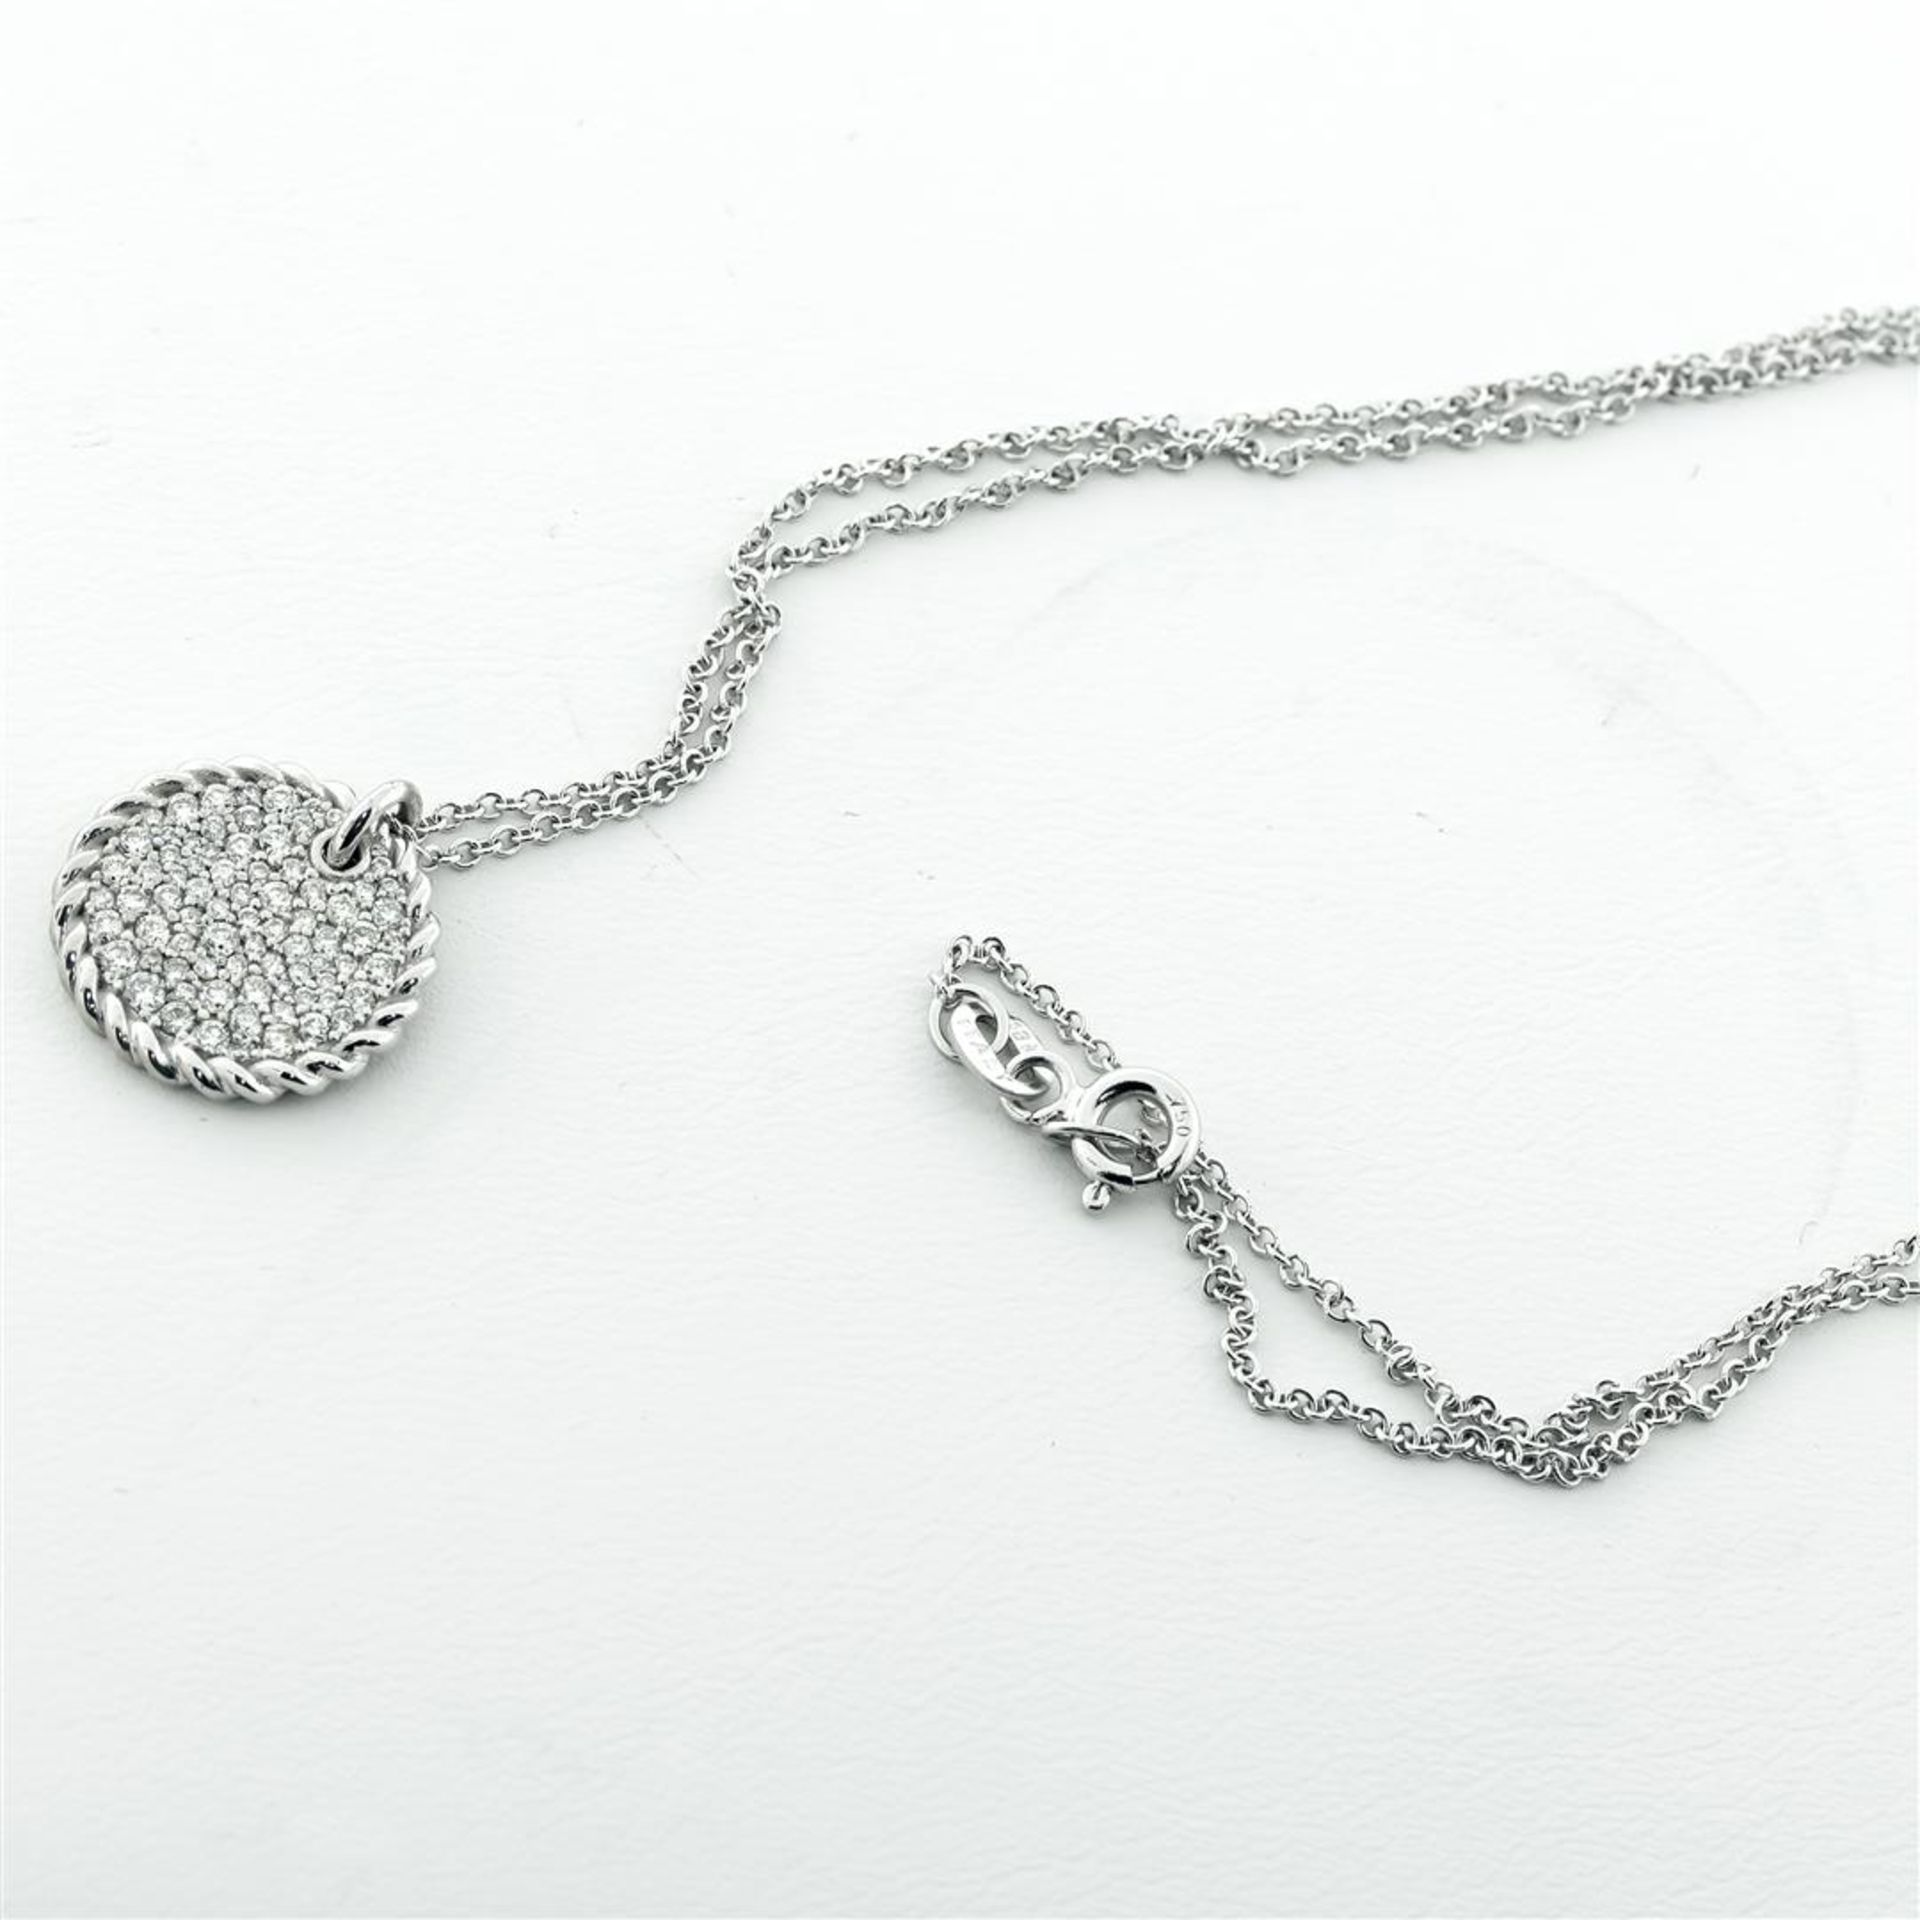 New 18k White Gold Diamond Cable Pendant with with 18K White Gold Chain - Image 5 of 7